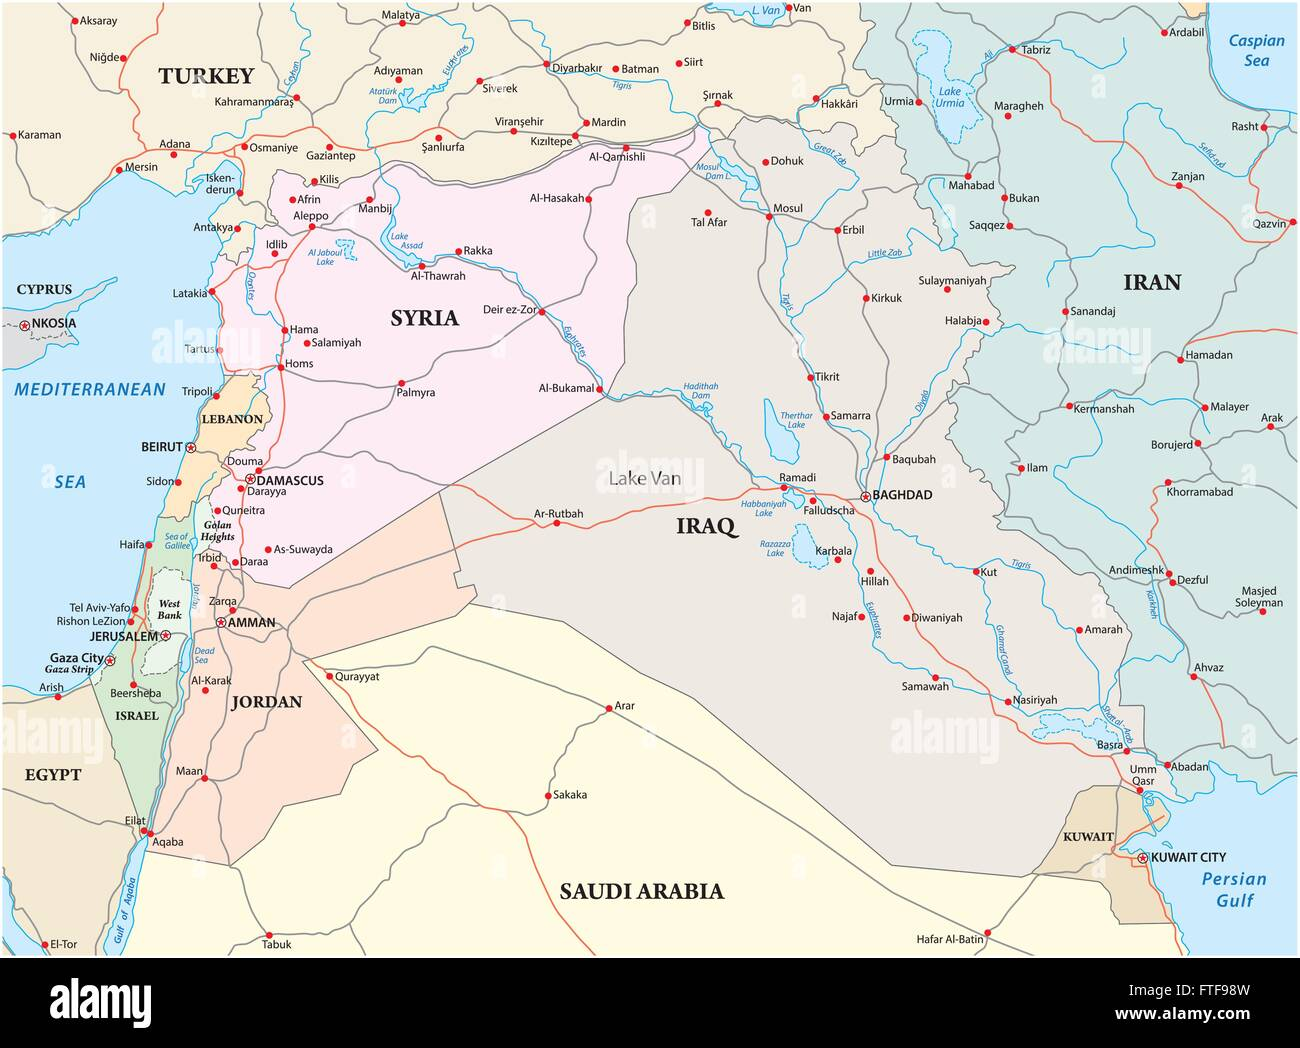 Middle East Map Stock Photos Middle East Map Stock Images Alamy - Detailed map of egypt and jordan